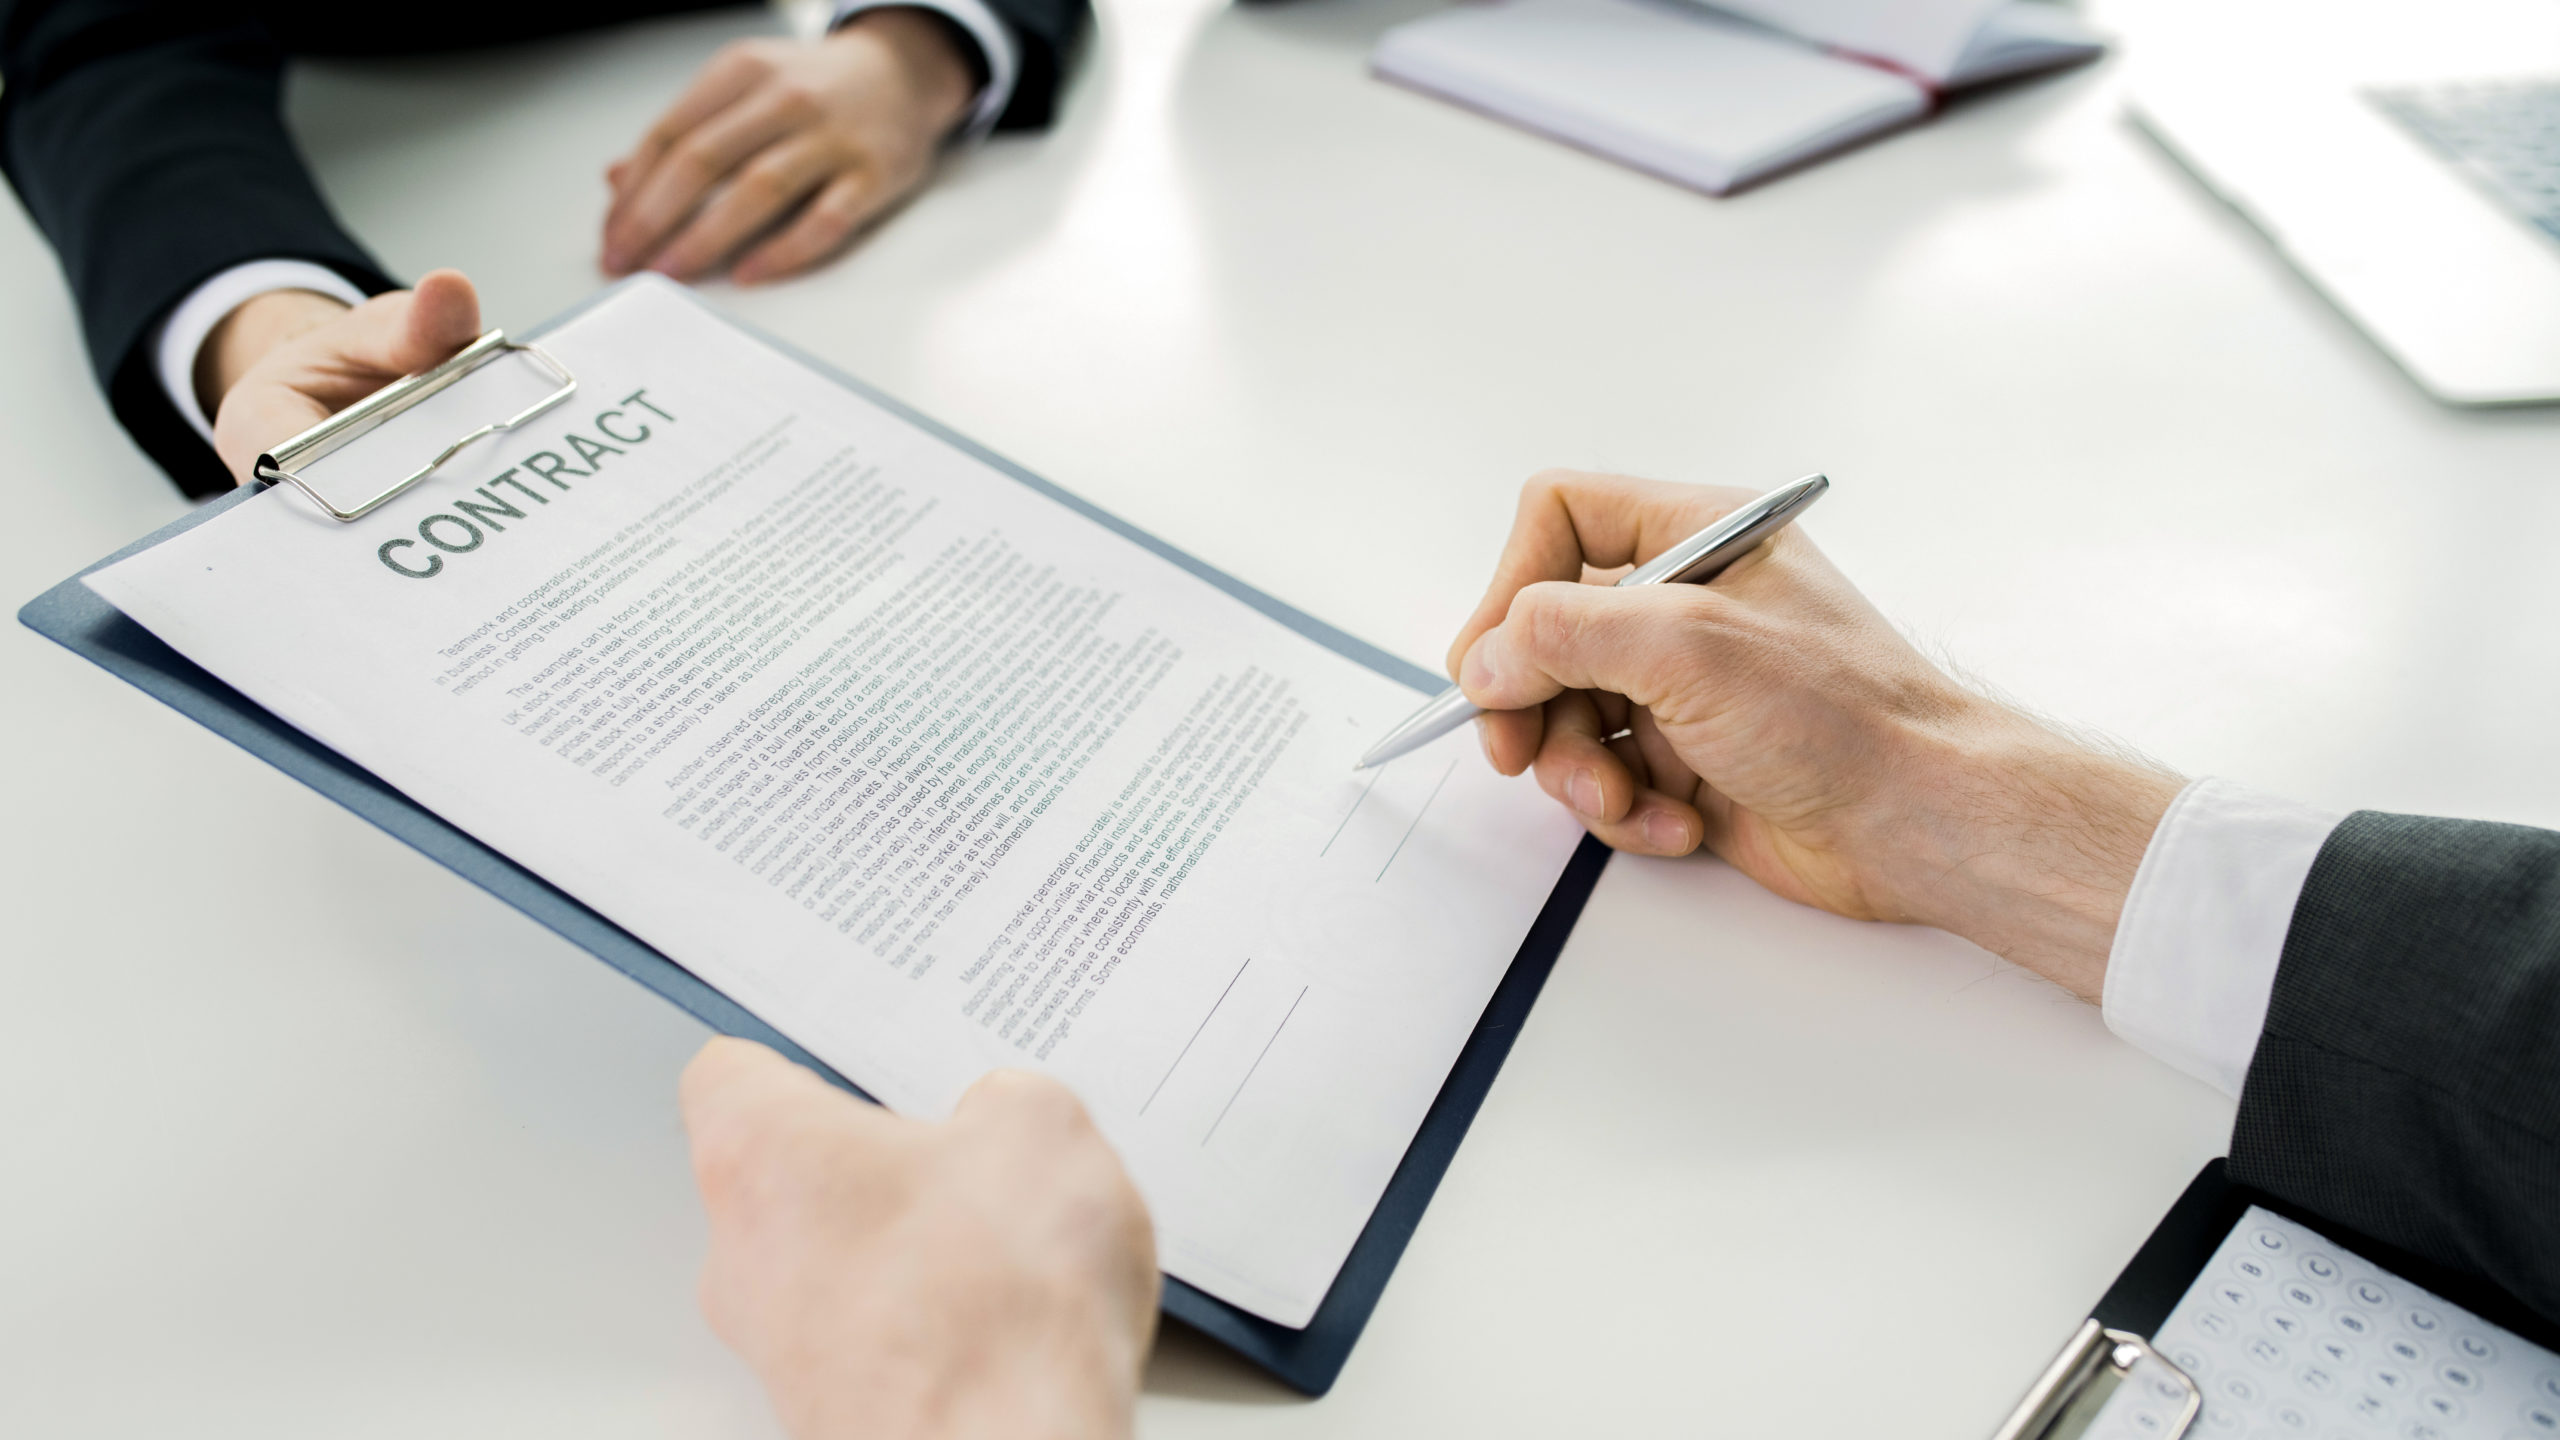 Close up of unrecognizable businessman signing contract during meeting with partners at table in conference room, copy space